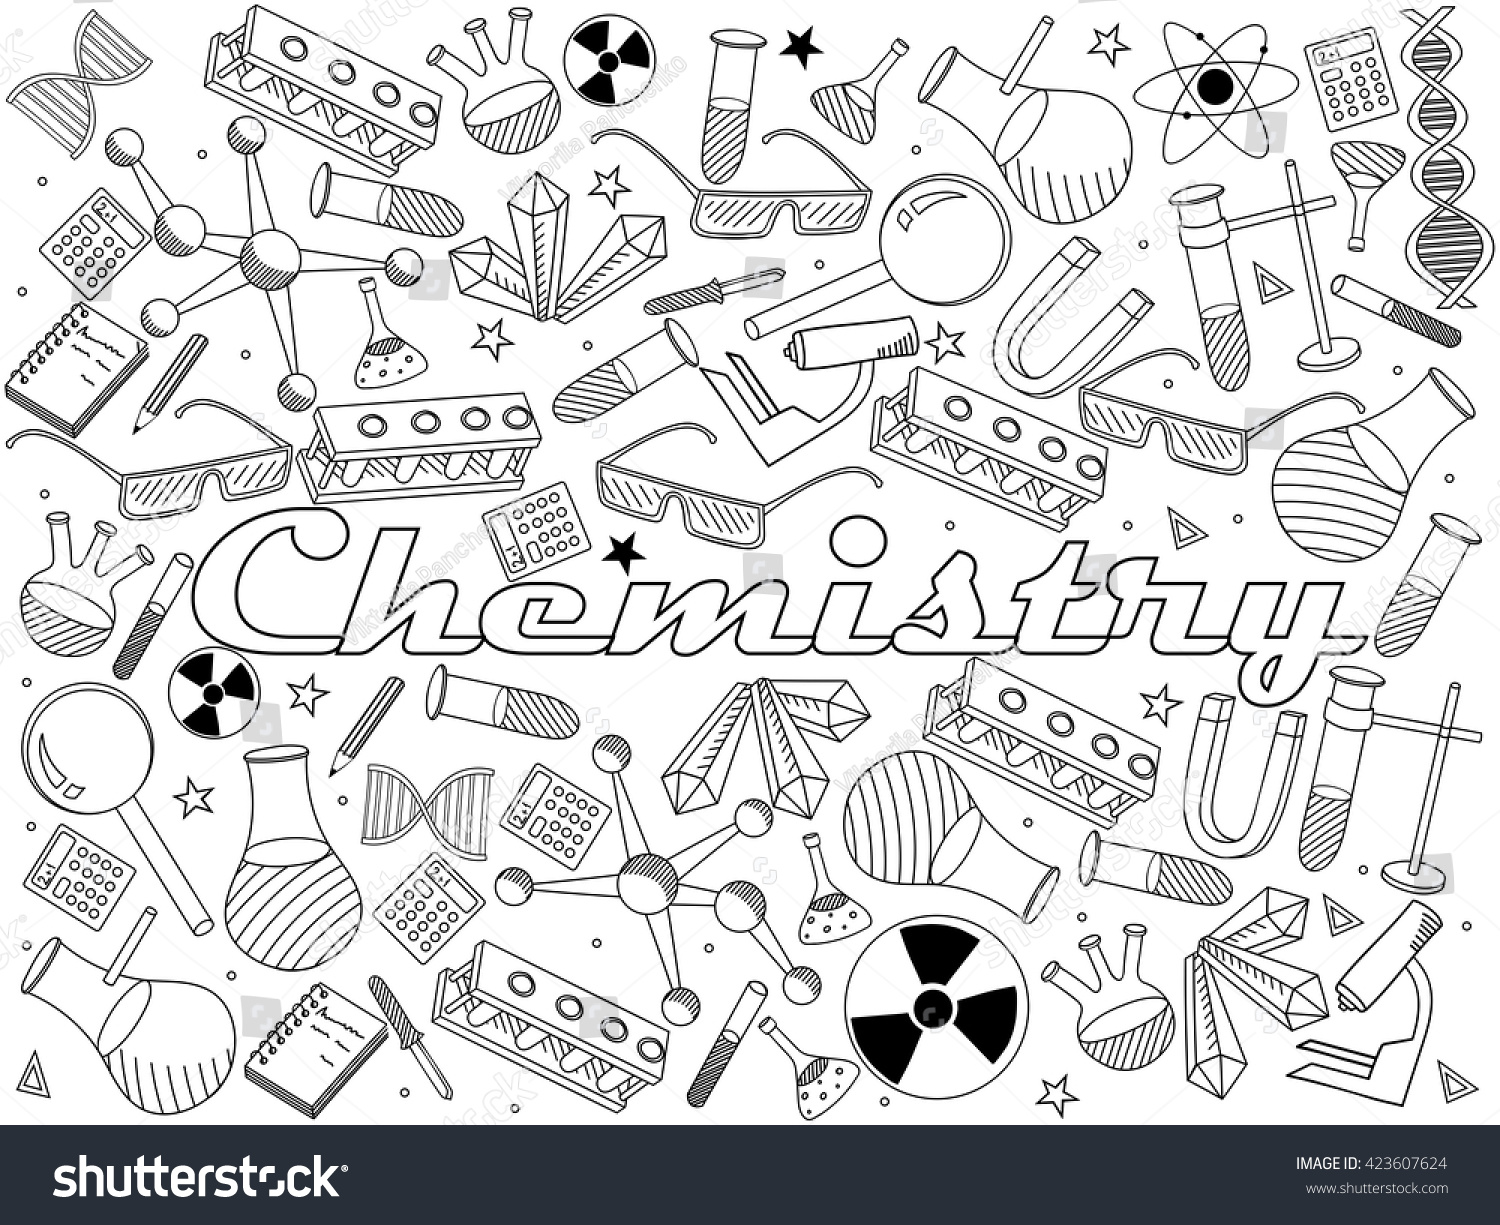 Emejing Chemistry Coloring Book Photos - Coloring 2018 ...